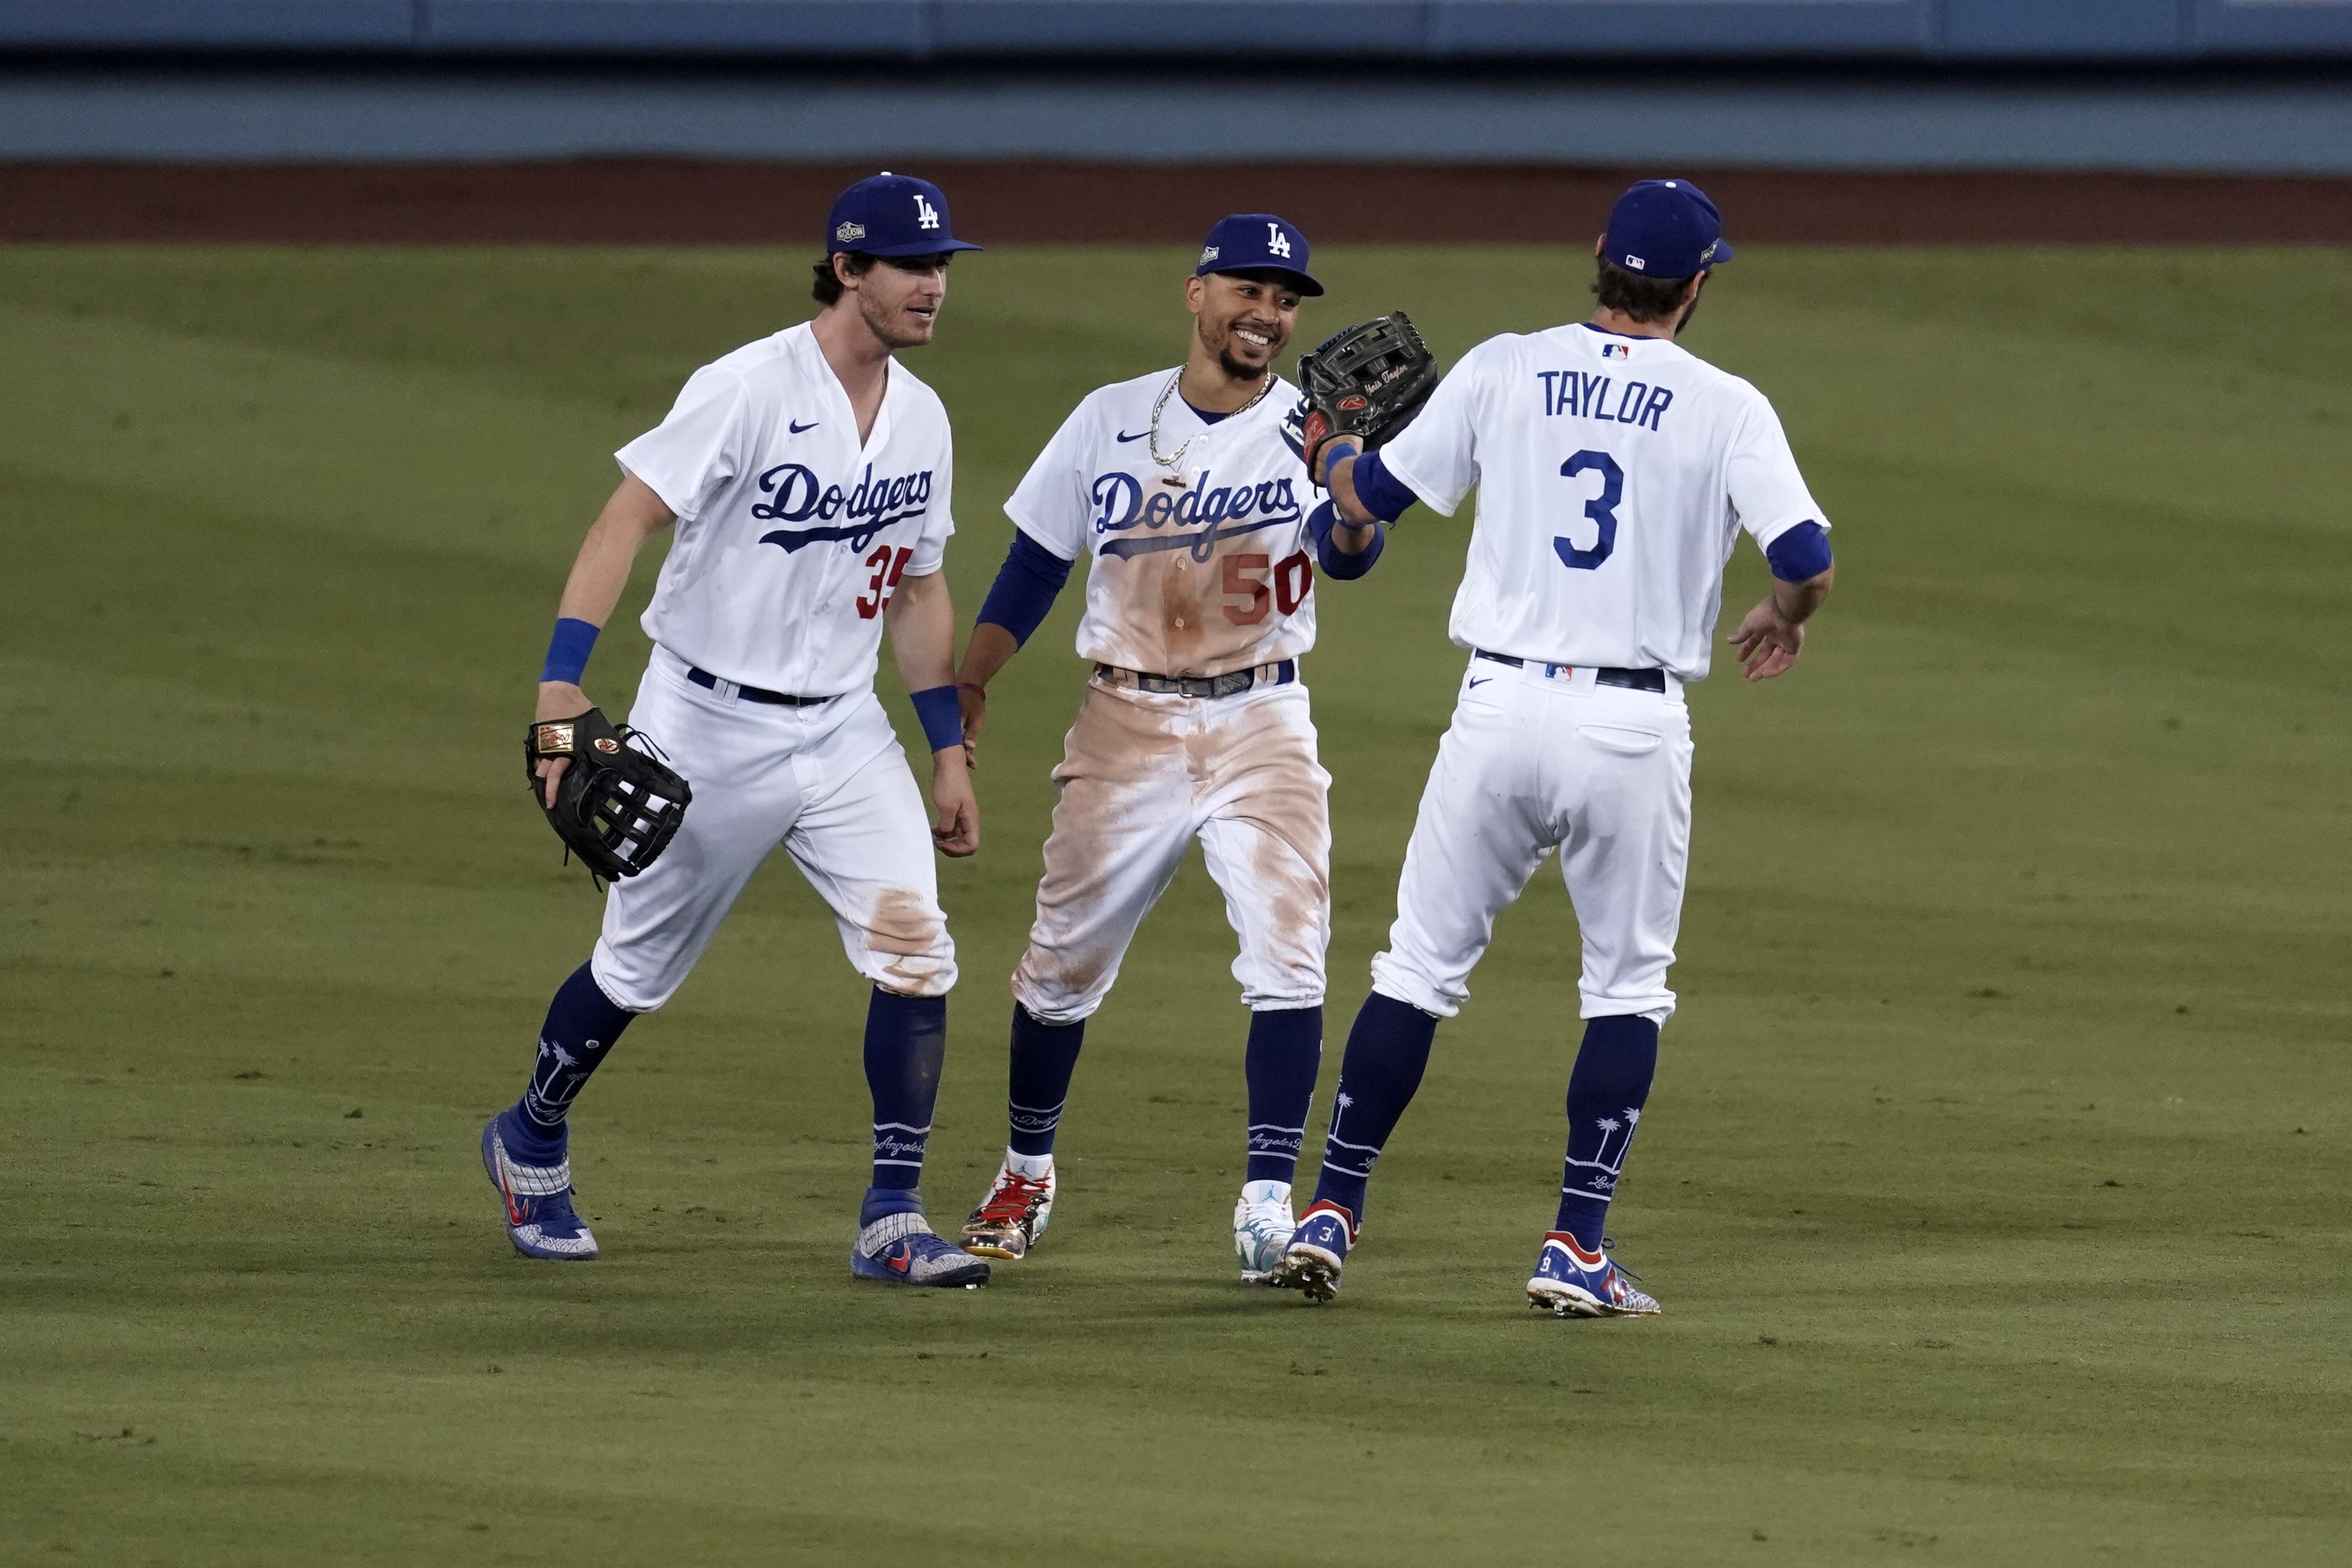 MLB playoffs Day 2 as it happened: Dodgers win Game 1 vs. Brewers, Yankees rally to sweep Indians